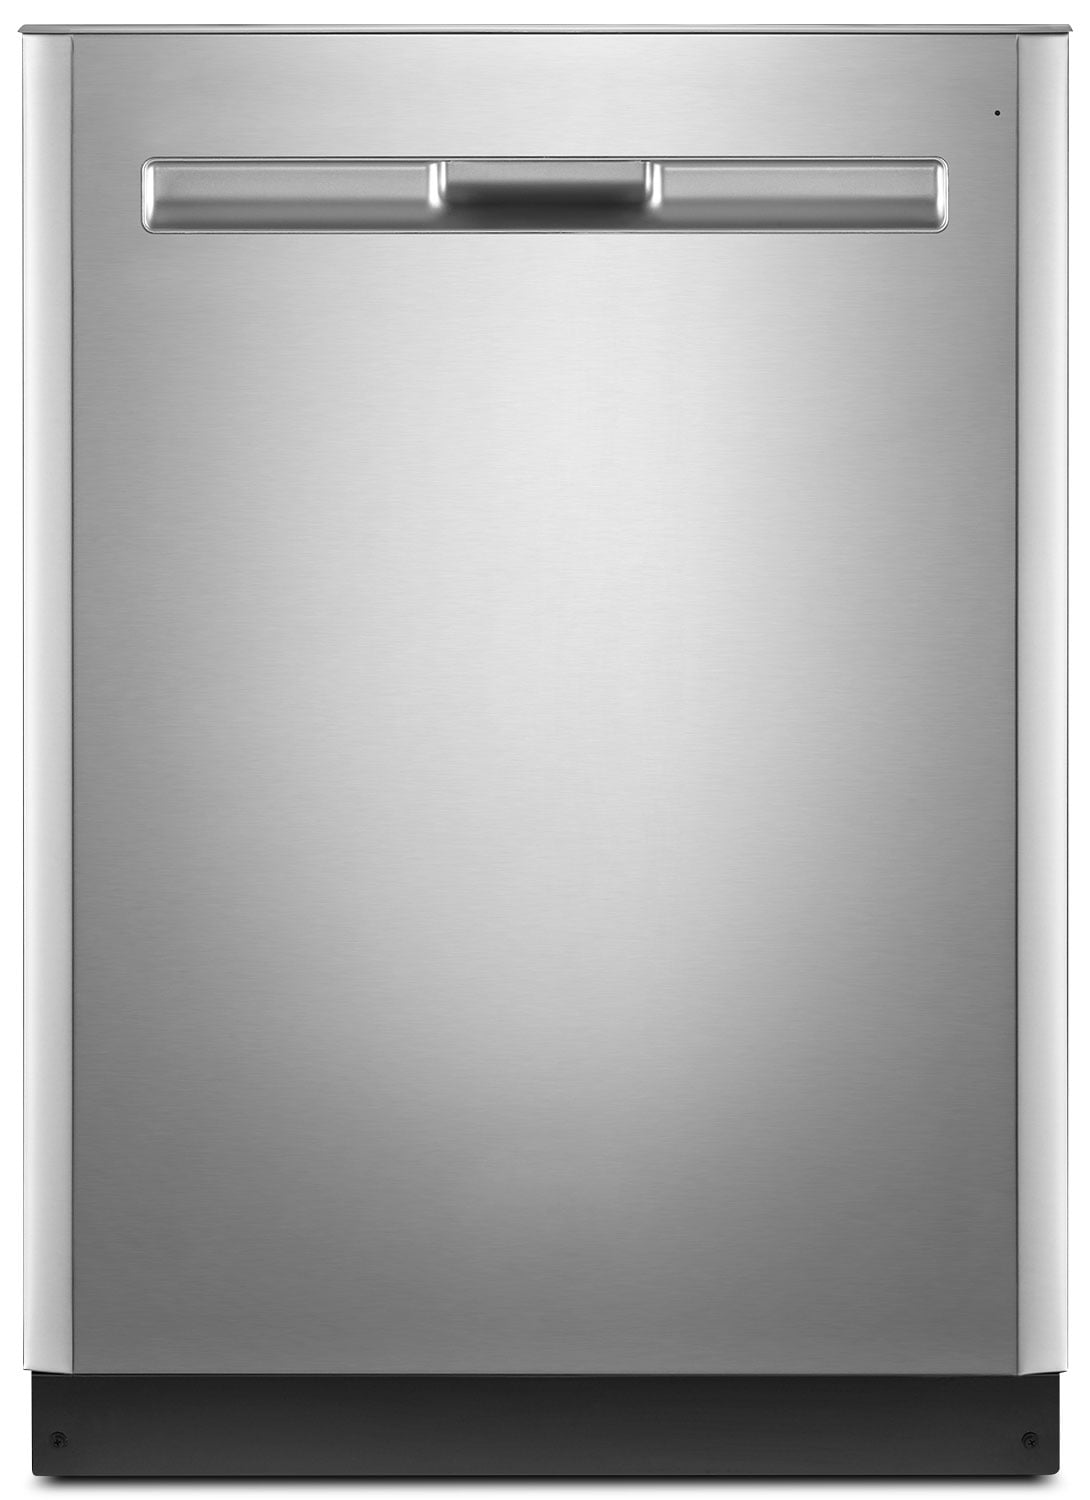 Clean-Up - Maytag Built-In Top-Control Dishwasher – MDB8959SFZ